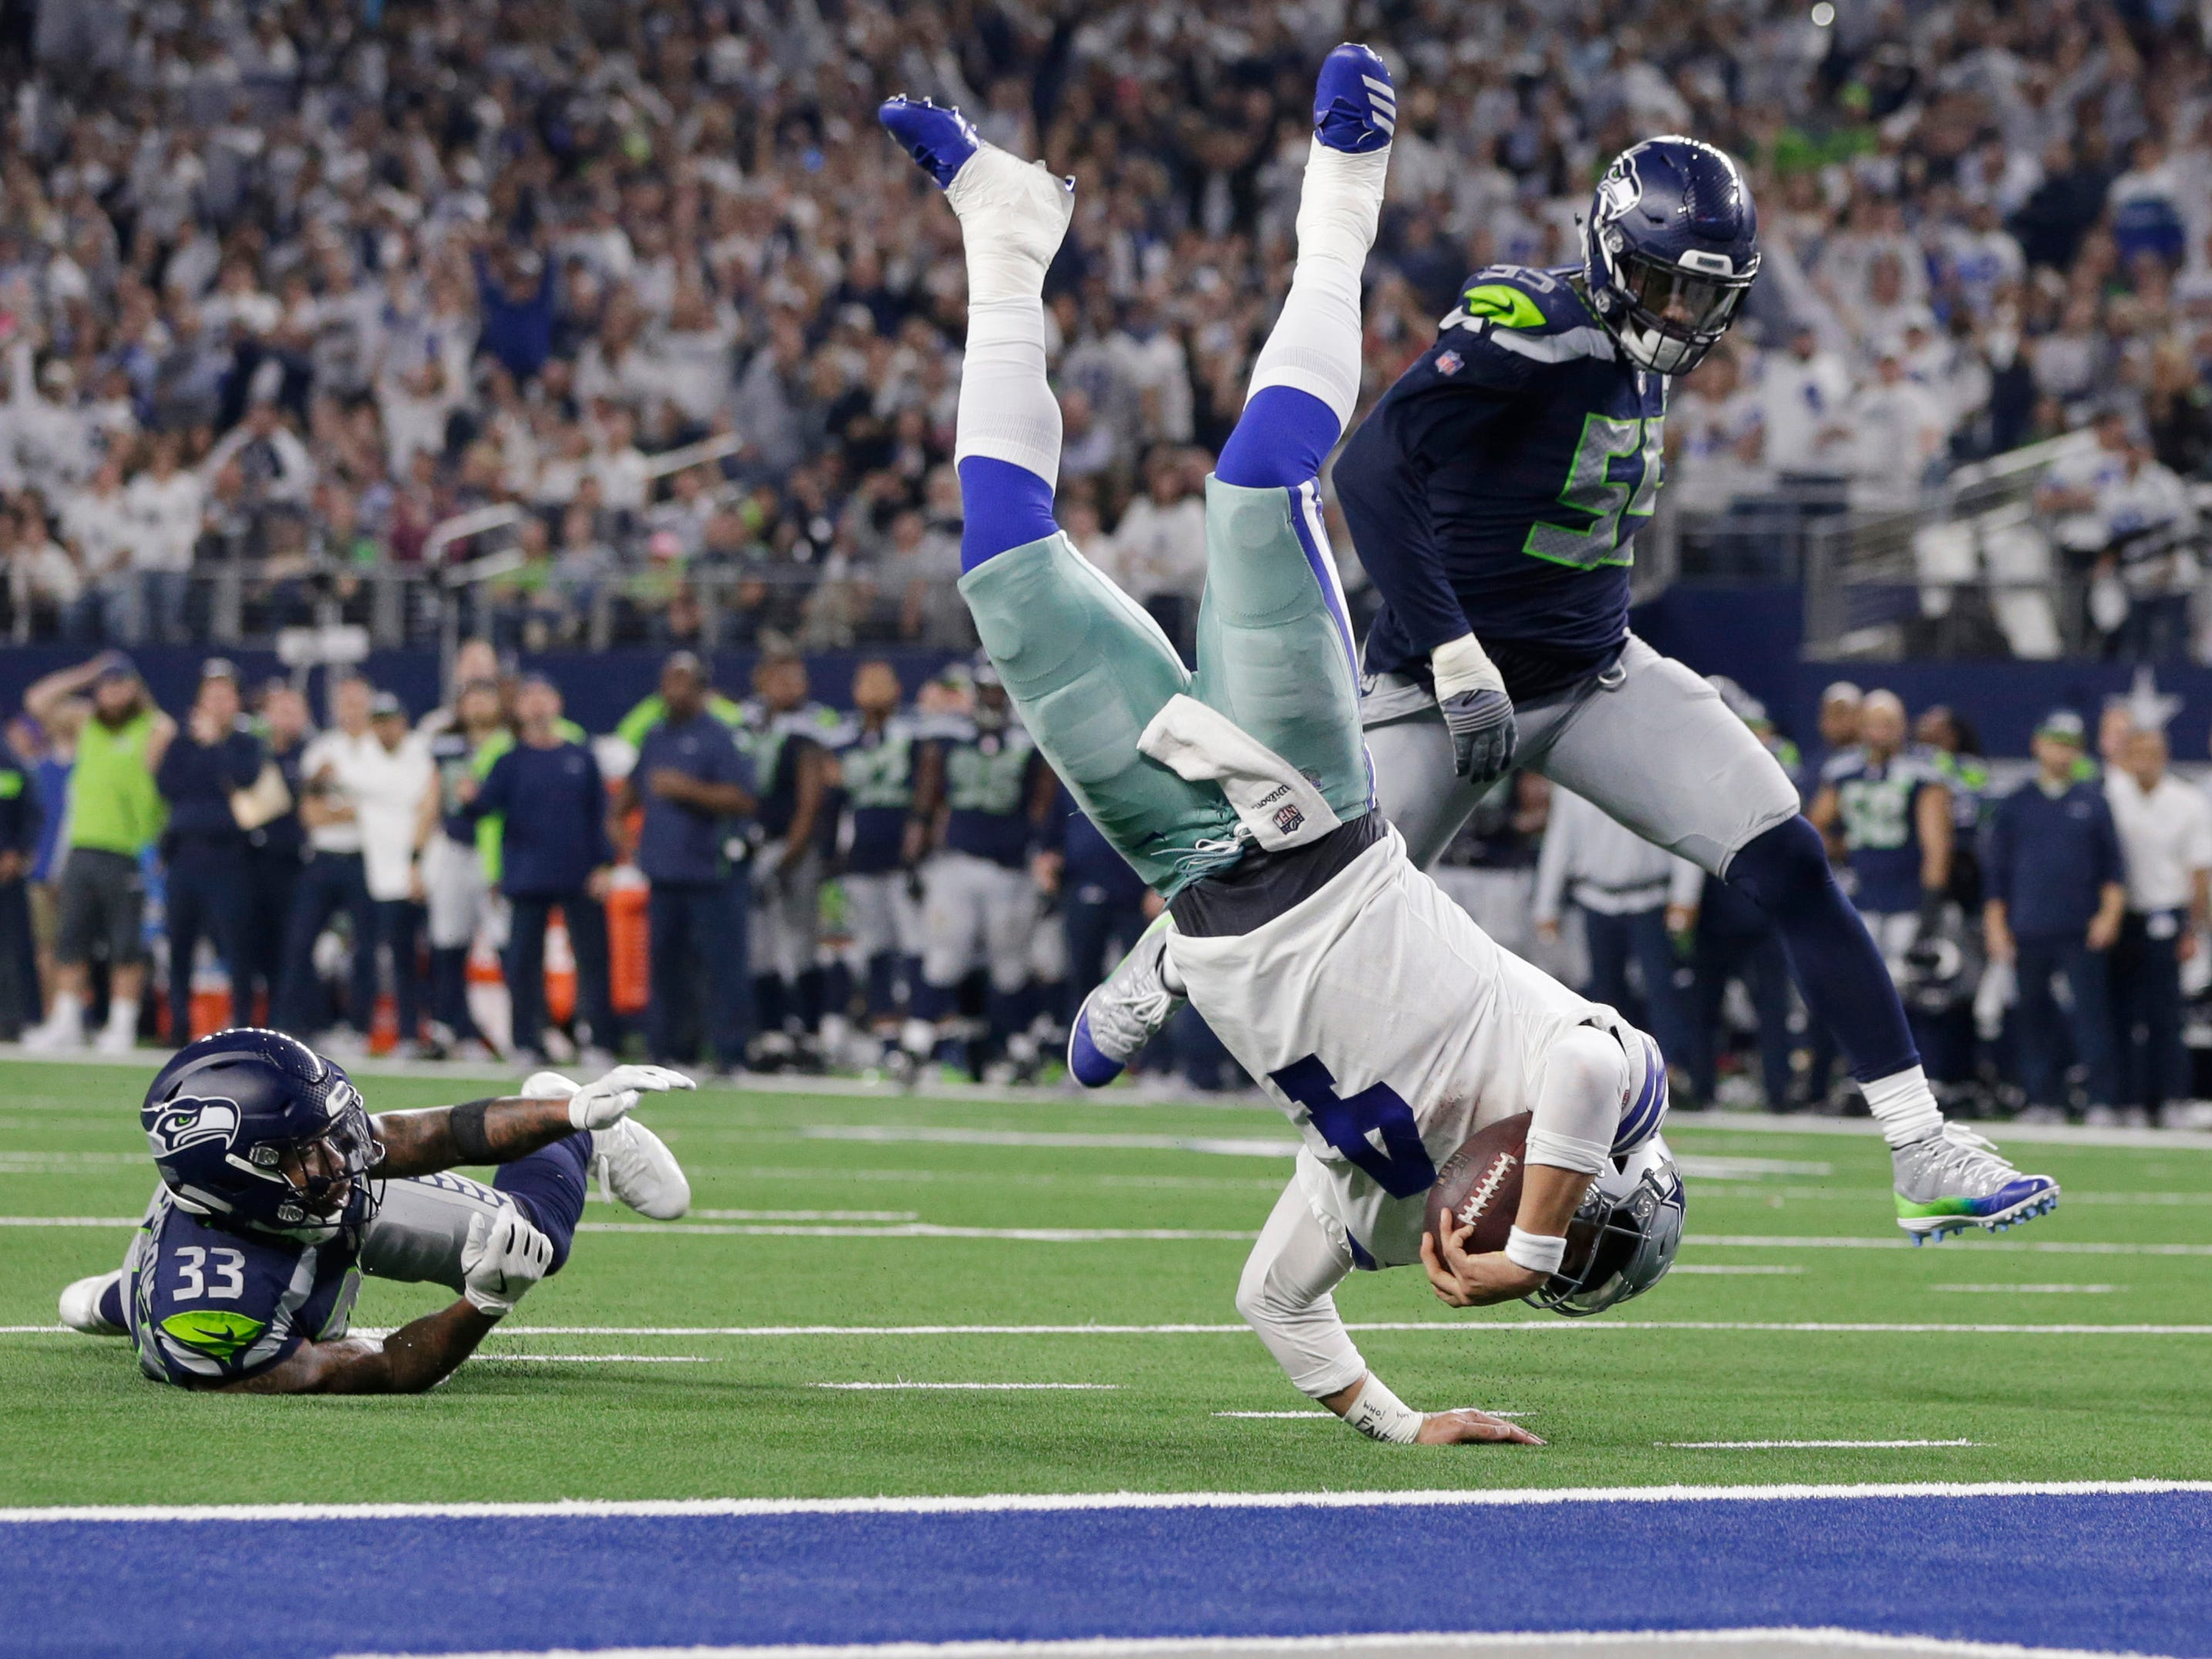 Wild-card playoffs: Dallas Cowboys quarterback Dak Prescott is tackled at the 1-yard line by Seattle Seahawks free safety Tedric Thompson (33) in the fourth quarter in the NFC wild-card playoff game at AT&T Stadium. The Cowboys won the game, 24-22.